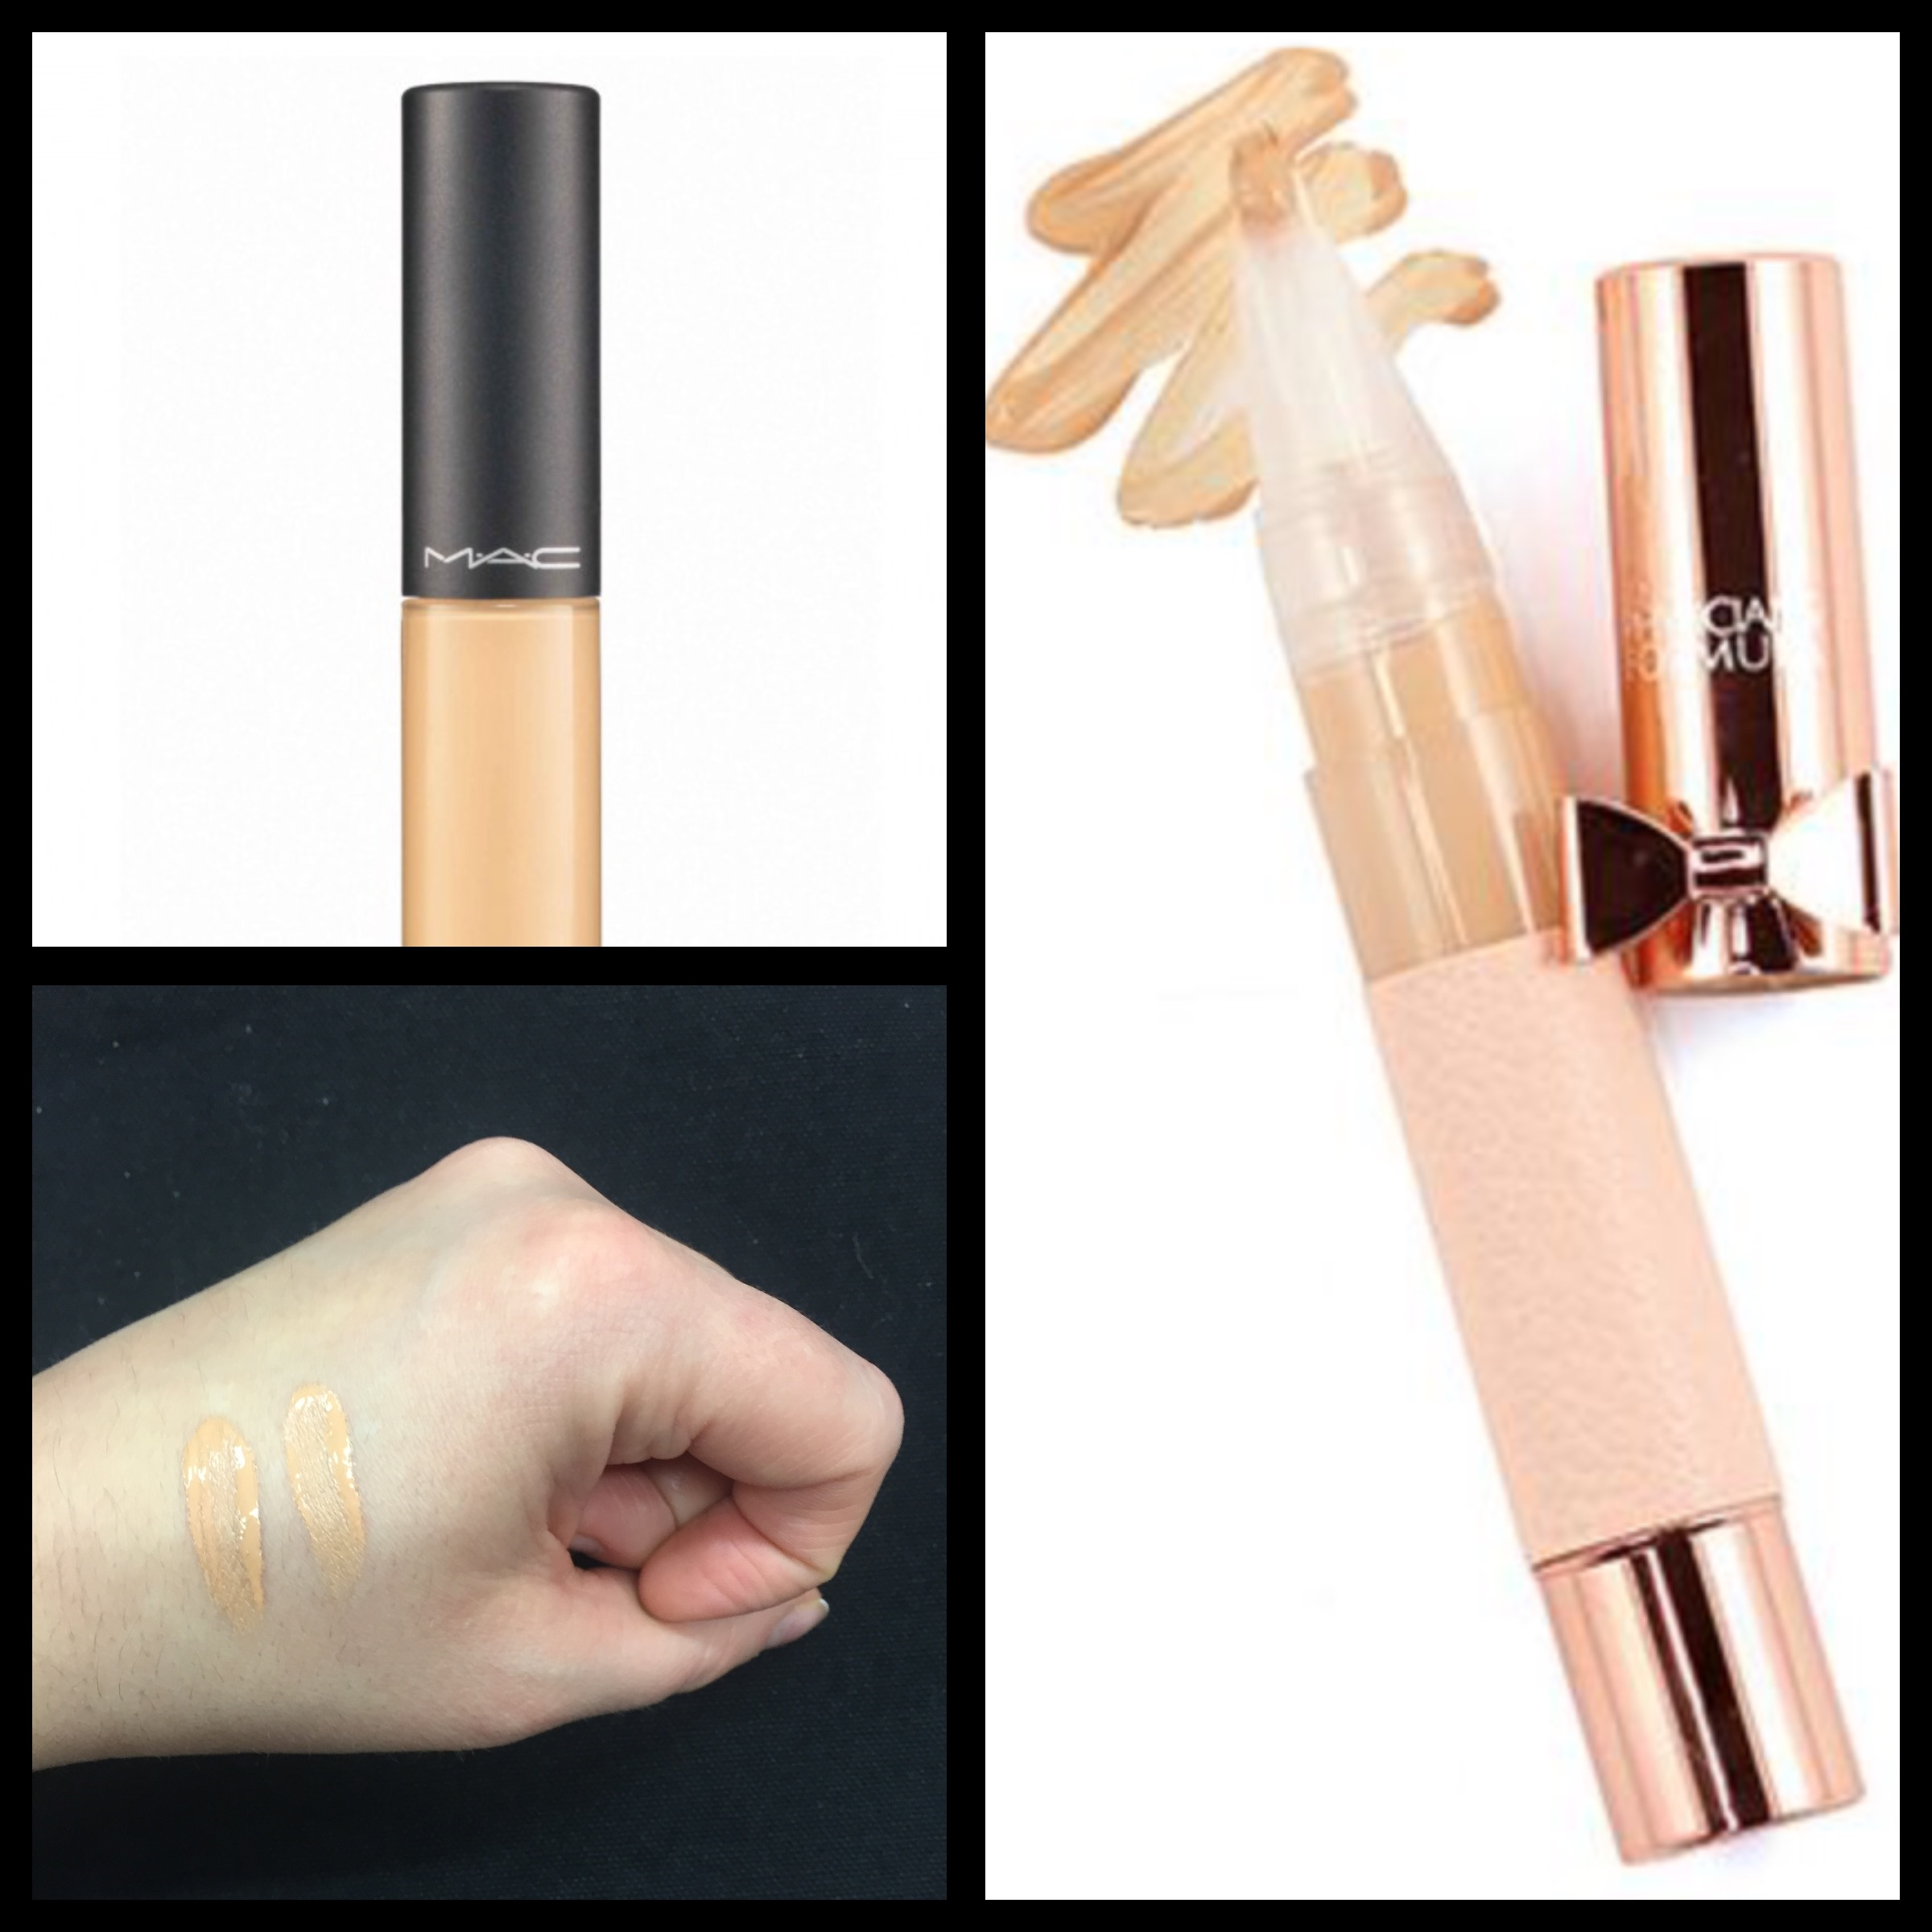 It may seem simple to some people, but makeup is tricky business. No matter how experienced you are, you could be making one of these foundation mistakes.